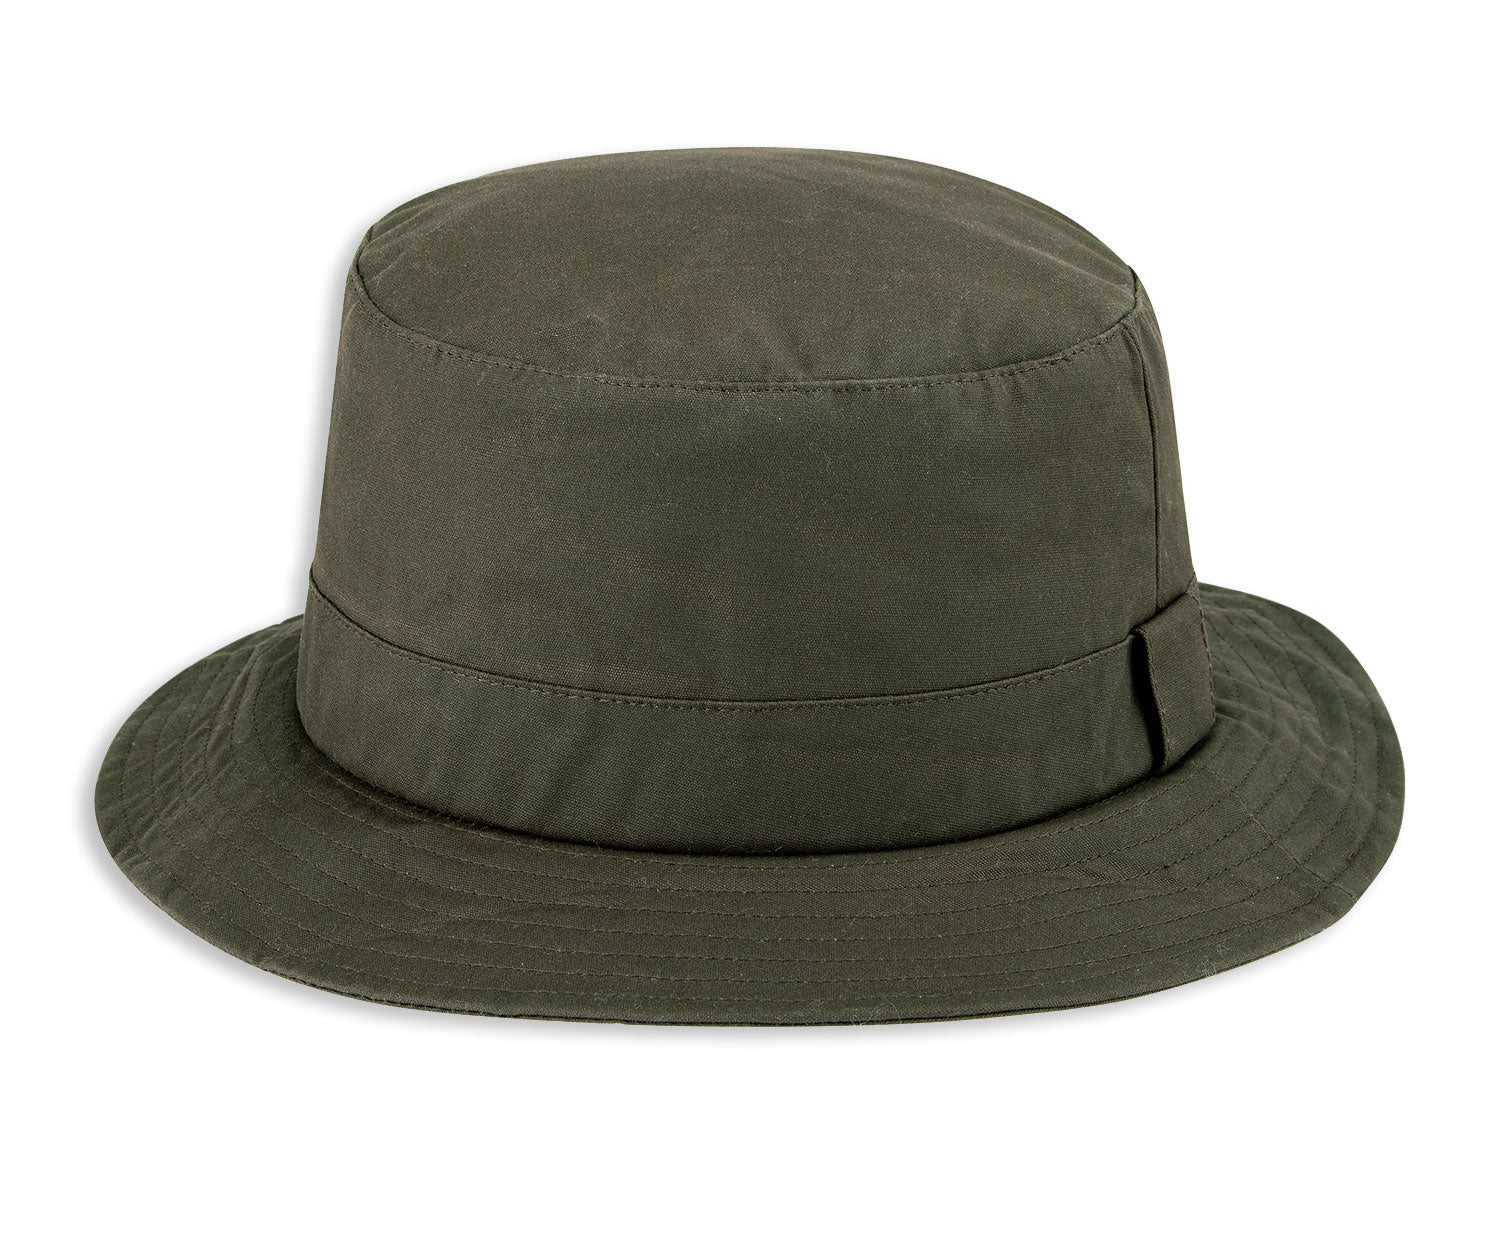 Green Olive Hoggs of Fife Waxed Bush Hat